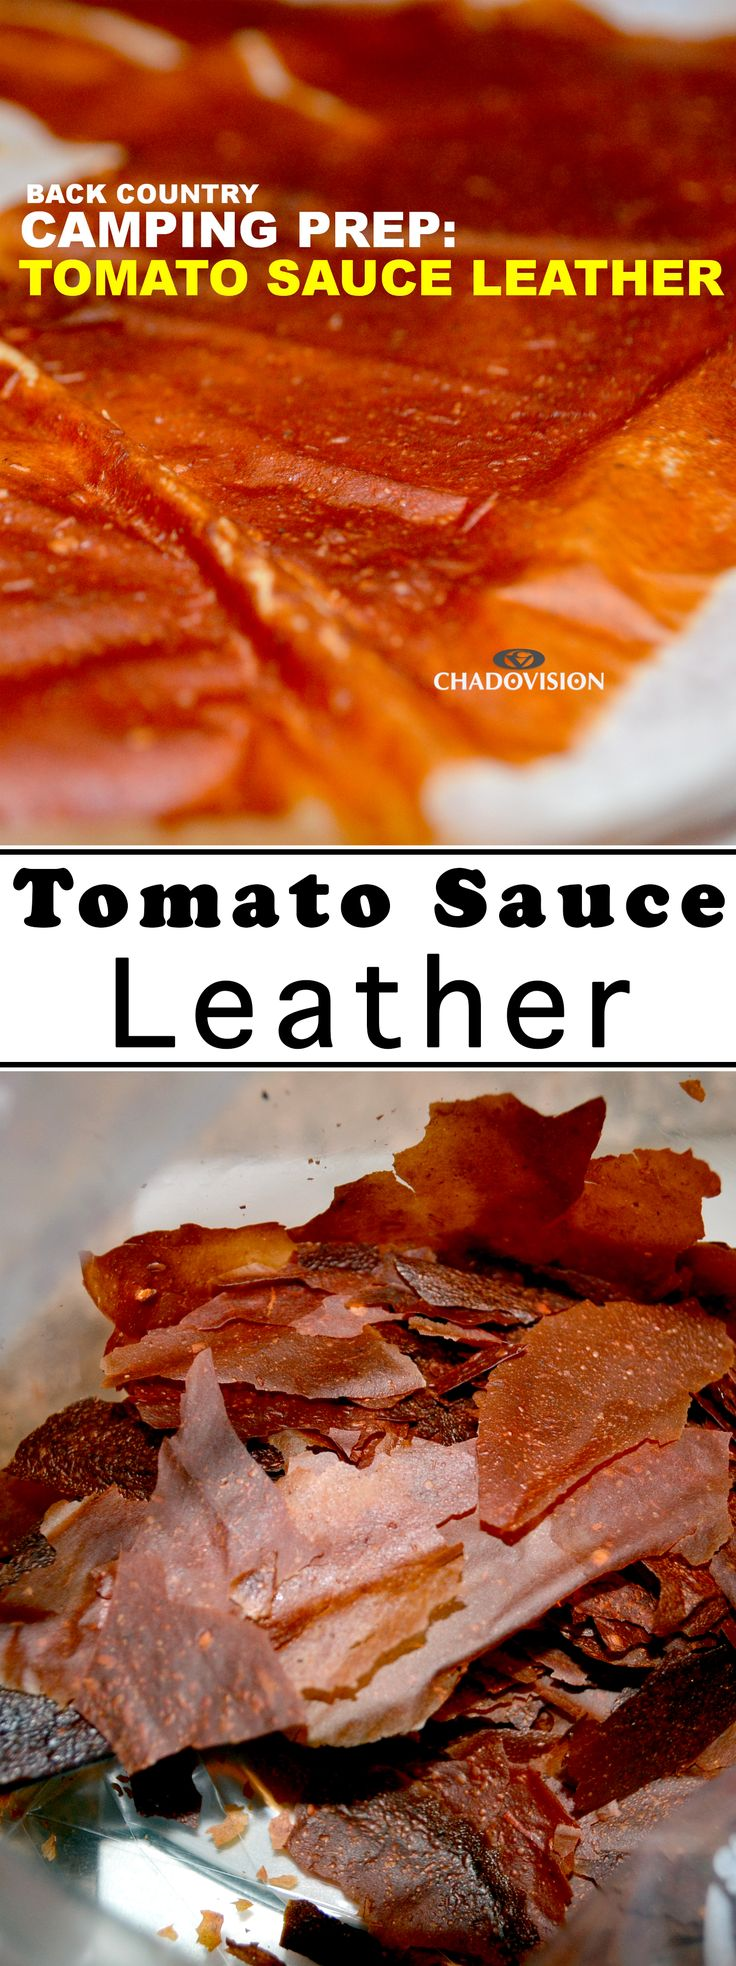 Save weight while camping with tomato sauce leather!